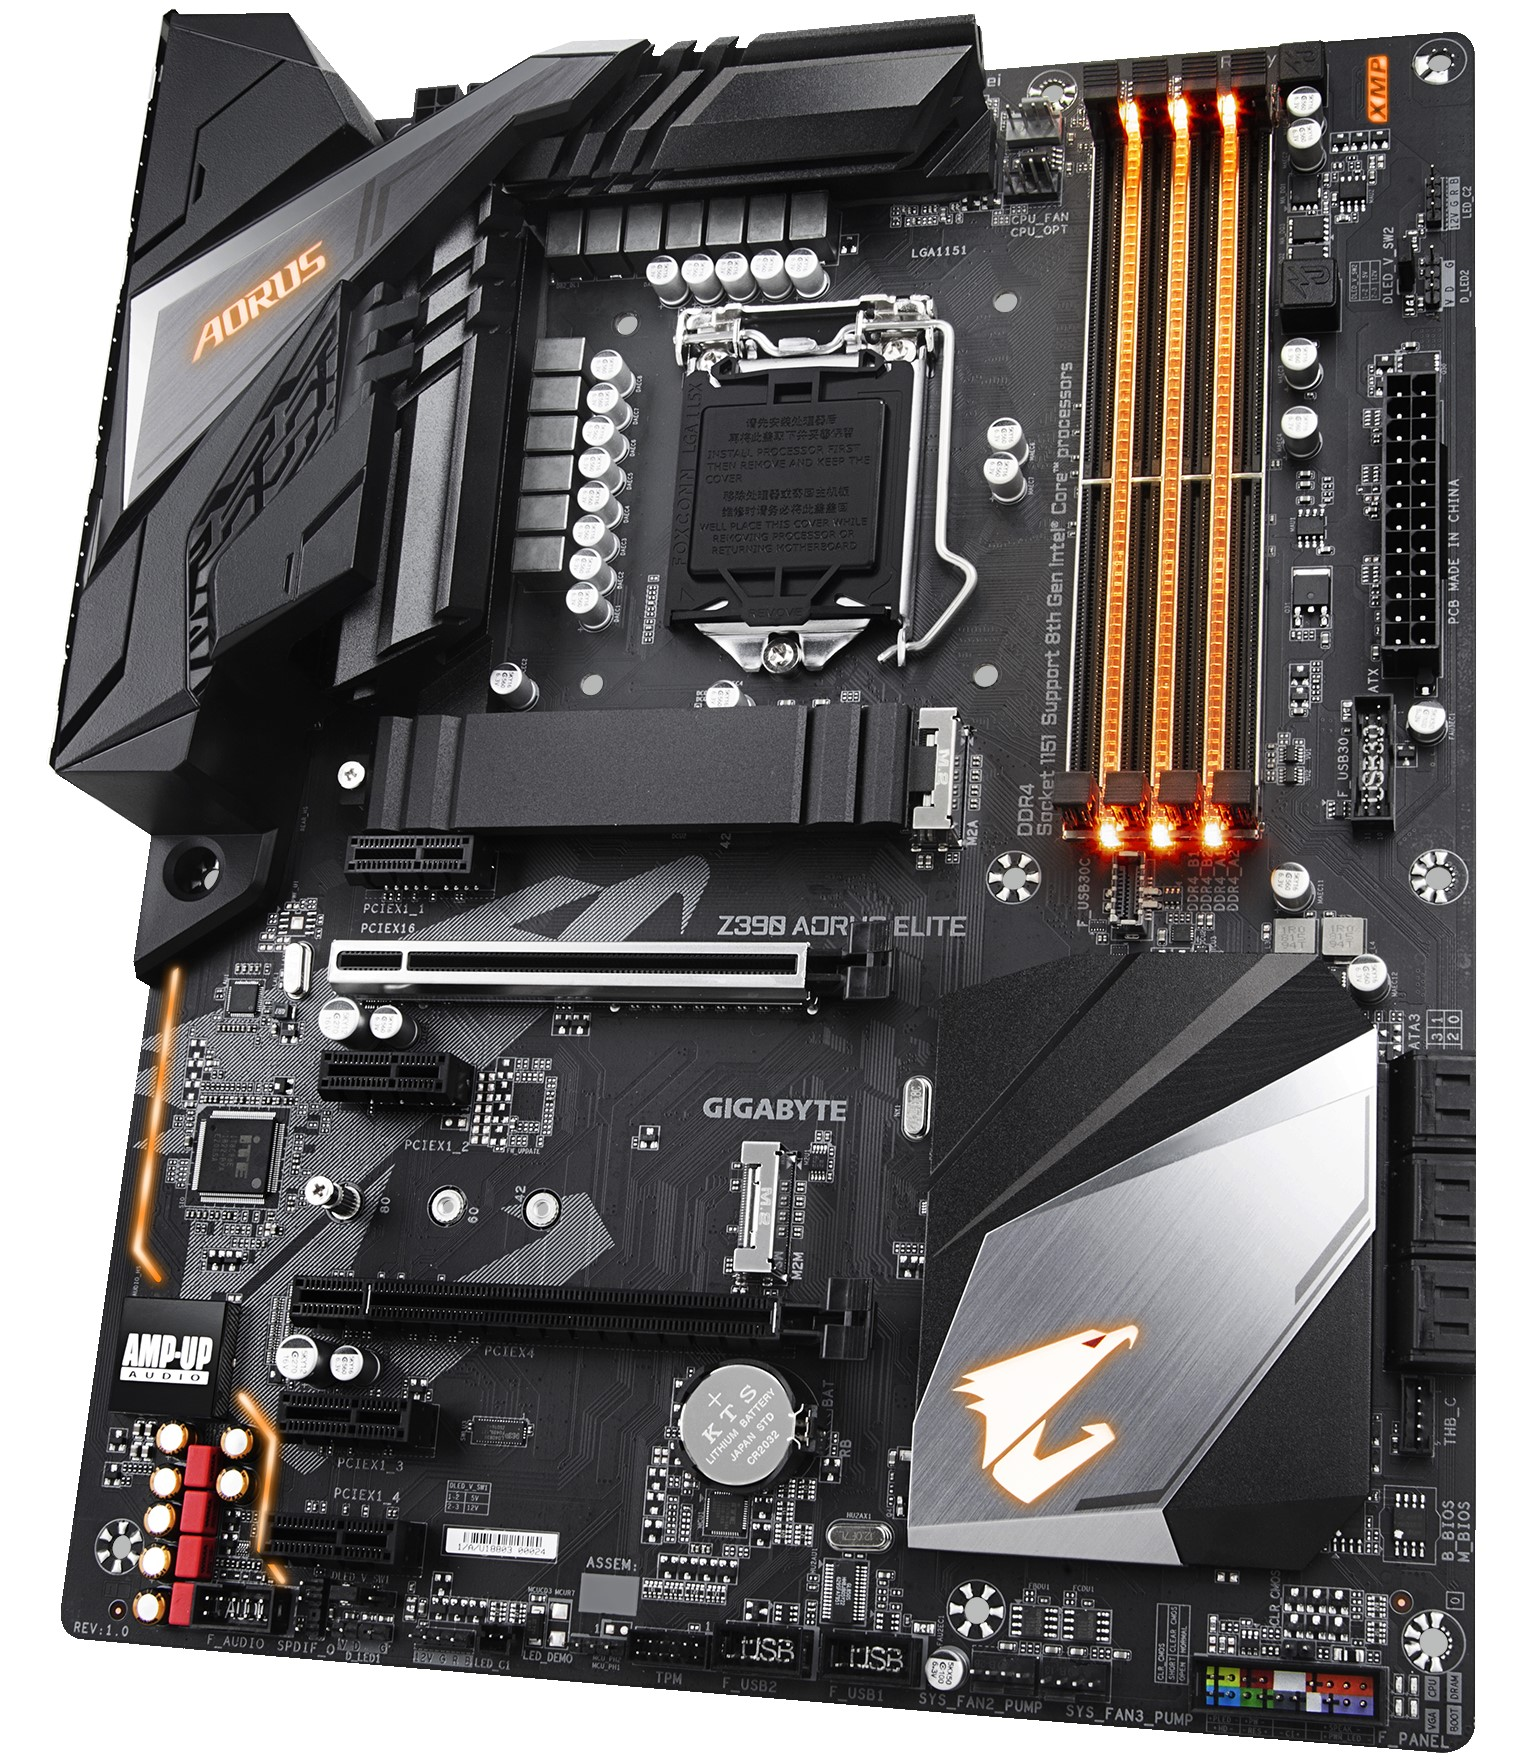 GIGABYTE Z390 Aorus Elite - Intel Z390 Motherboard Overview: 50+